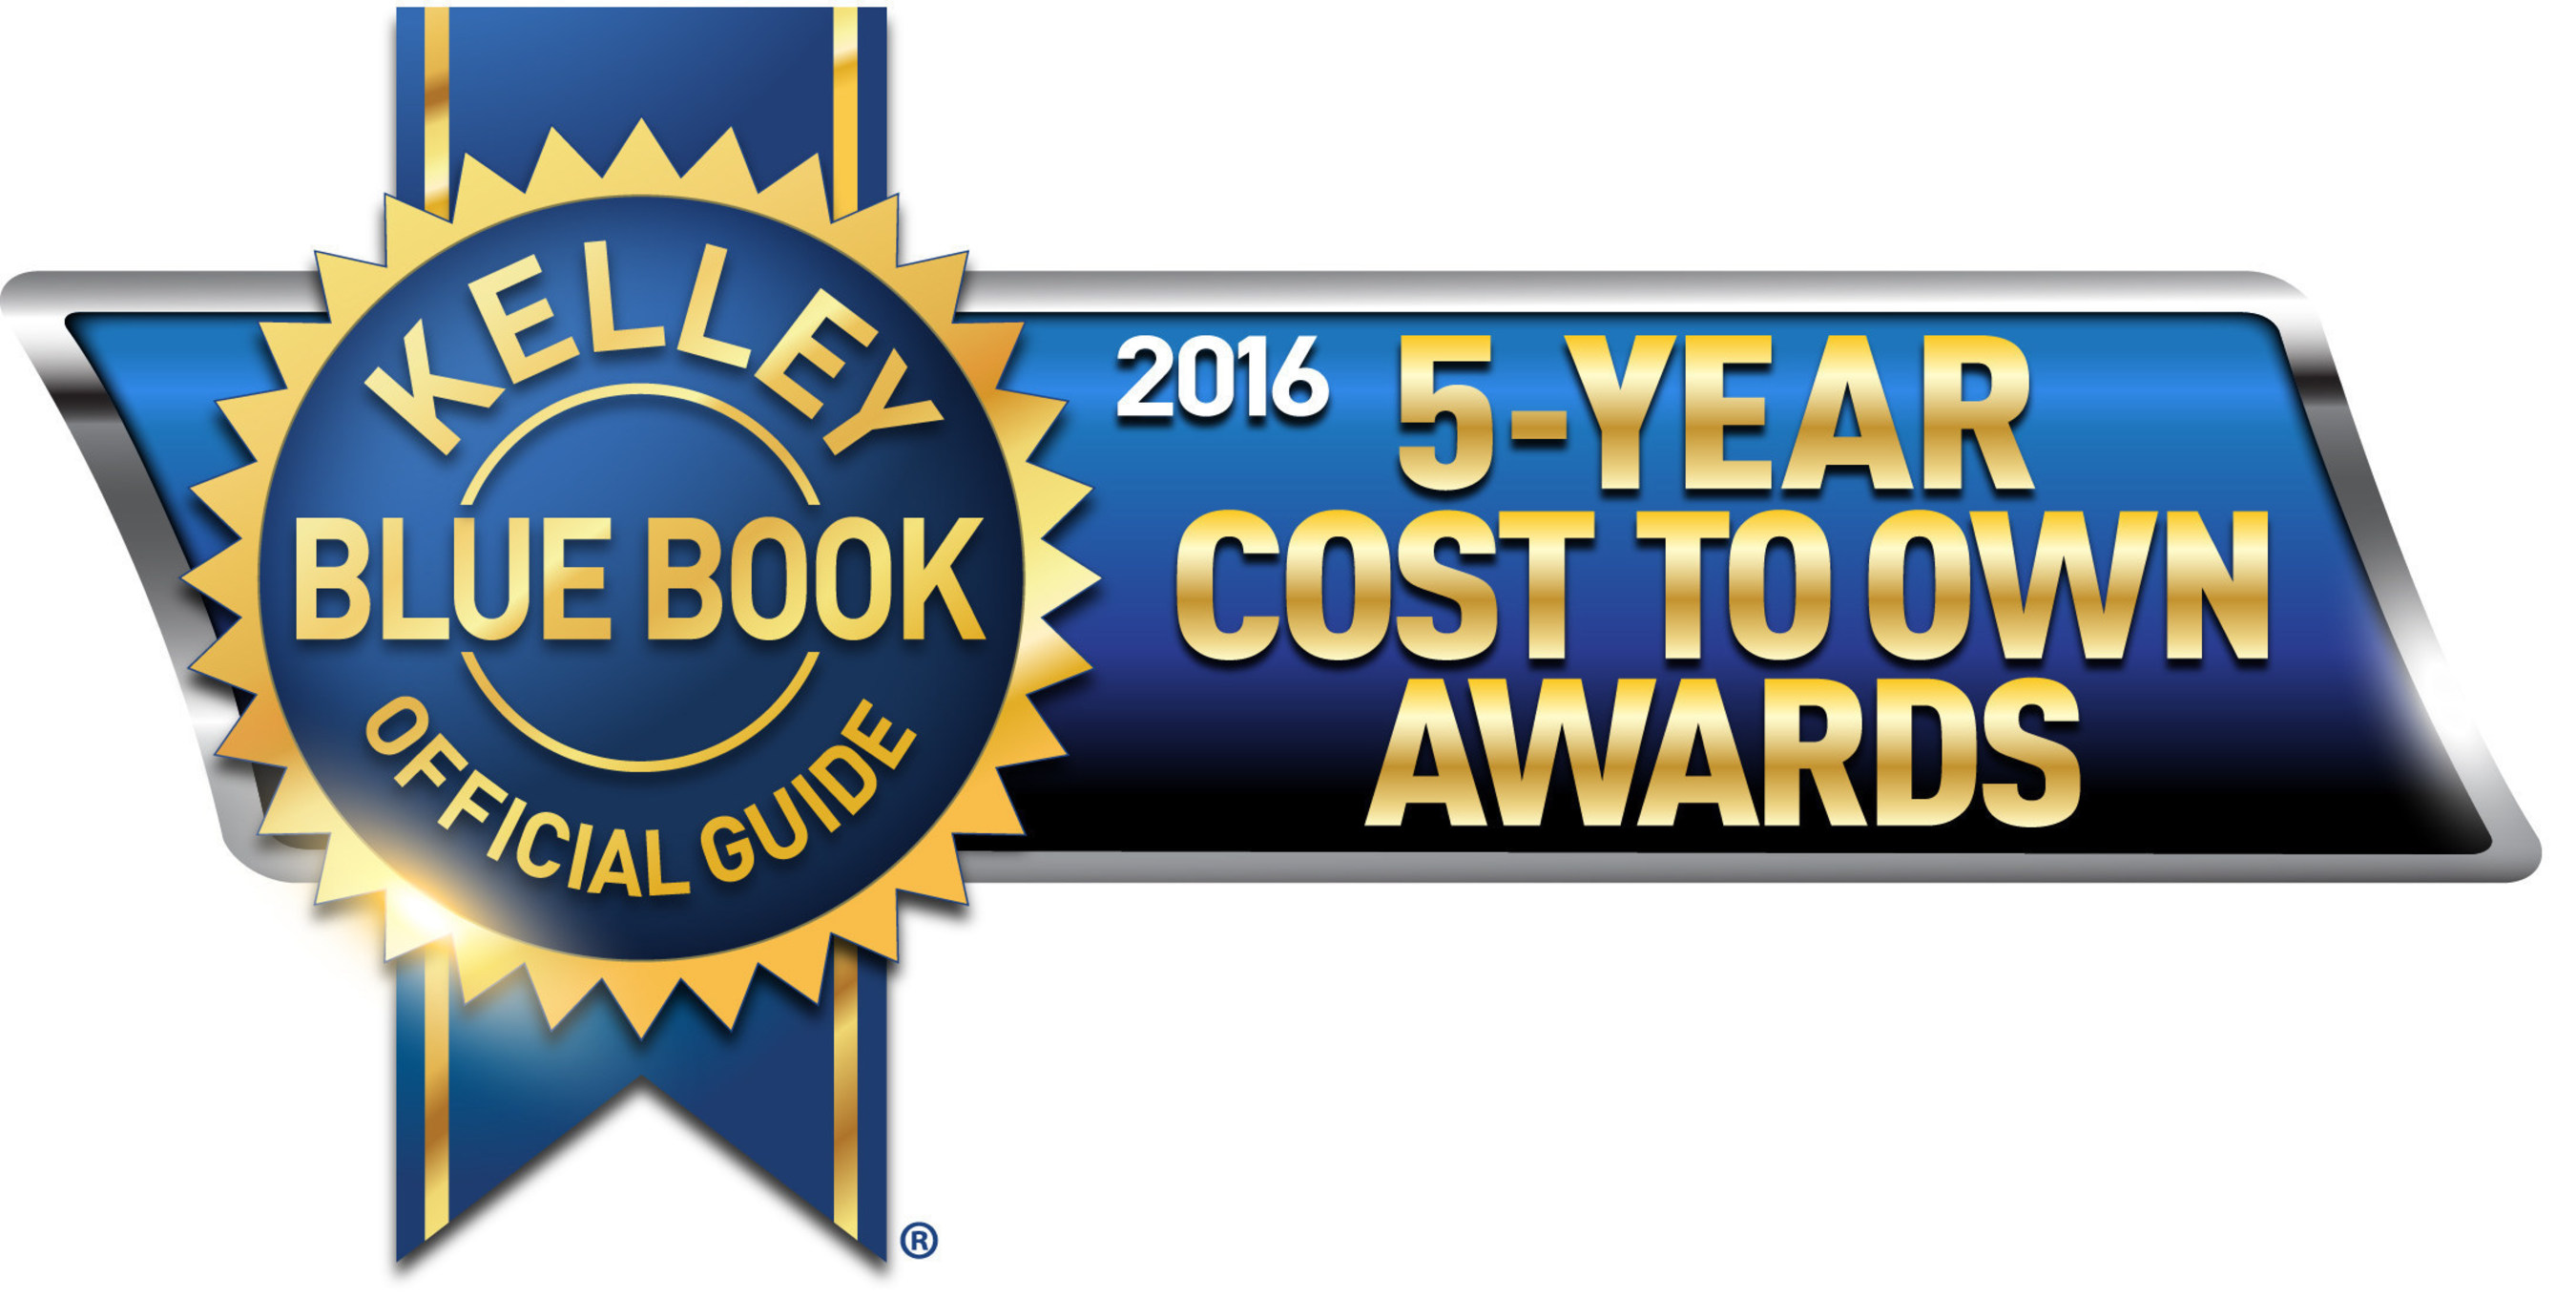 Kbb Com Used Car Values Awesome 2016 5 Year Cost to Own Award Winners Announced by Kelley Blue Book